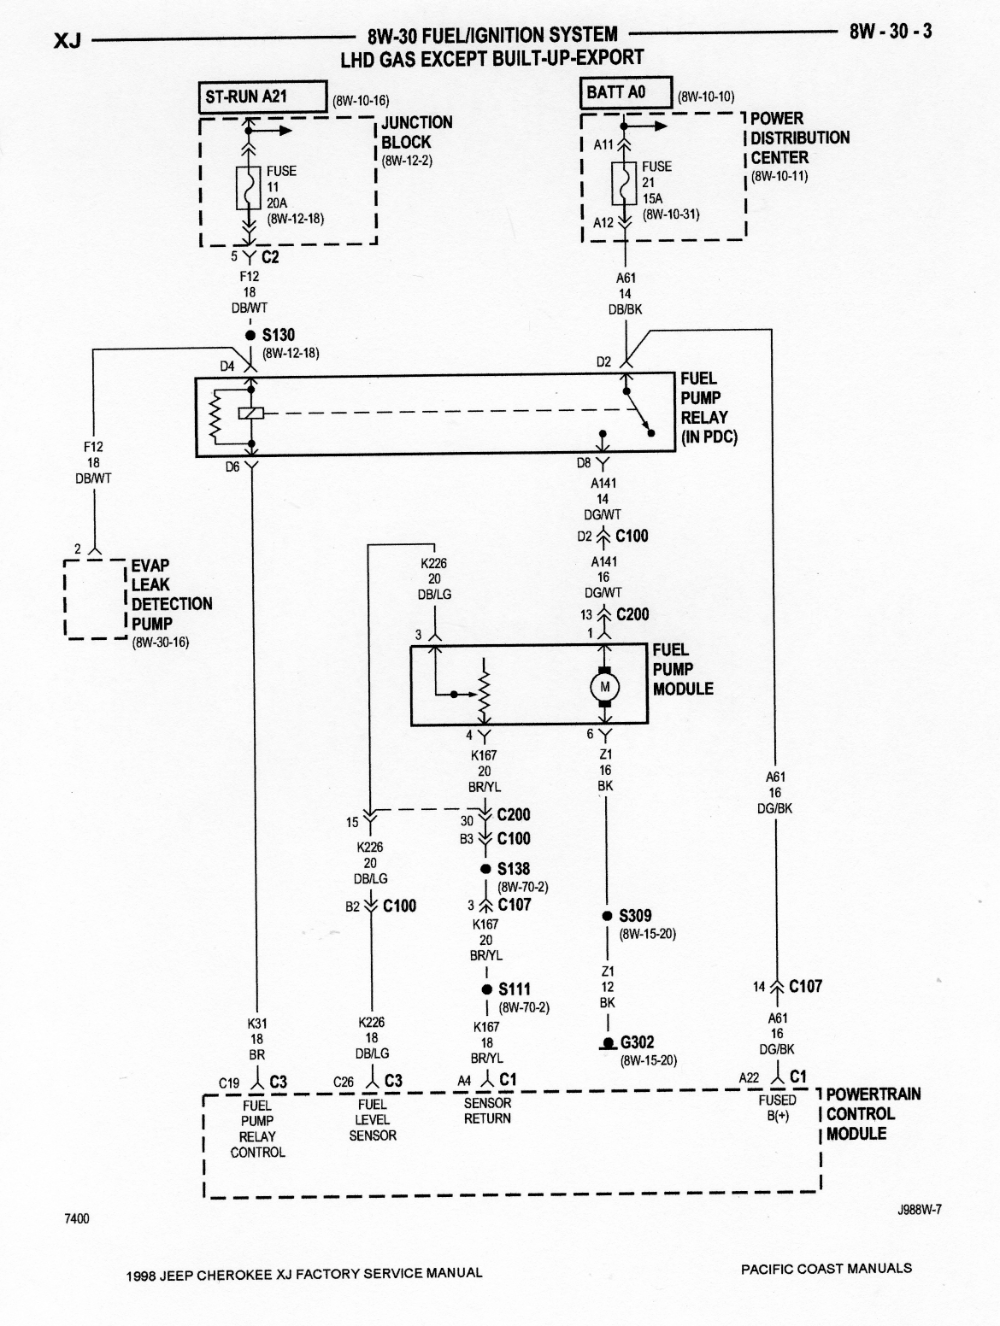 [MANUALS] Jeep Cherokee Fuel Pump Wiring Diagram [PDF